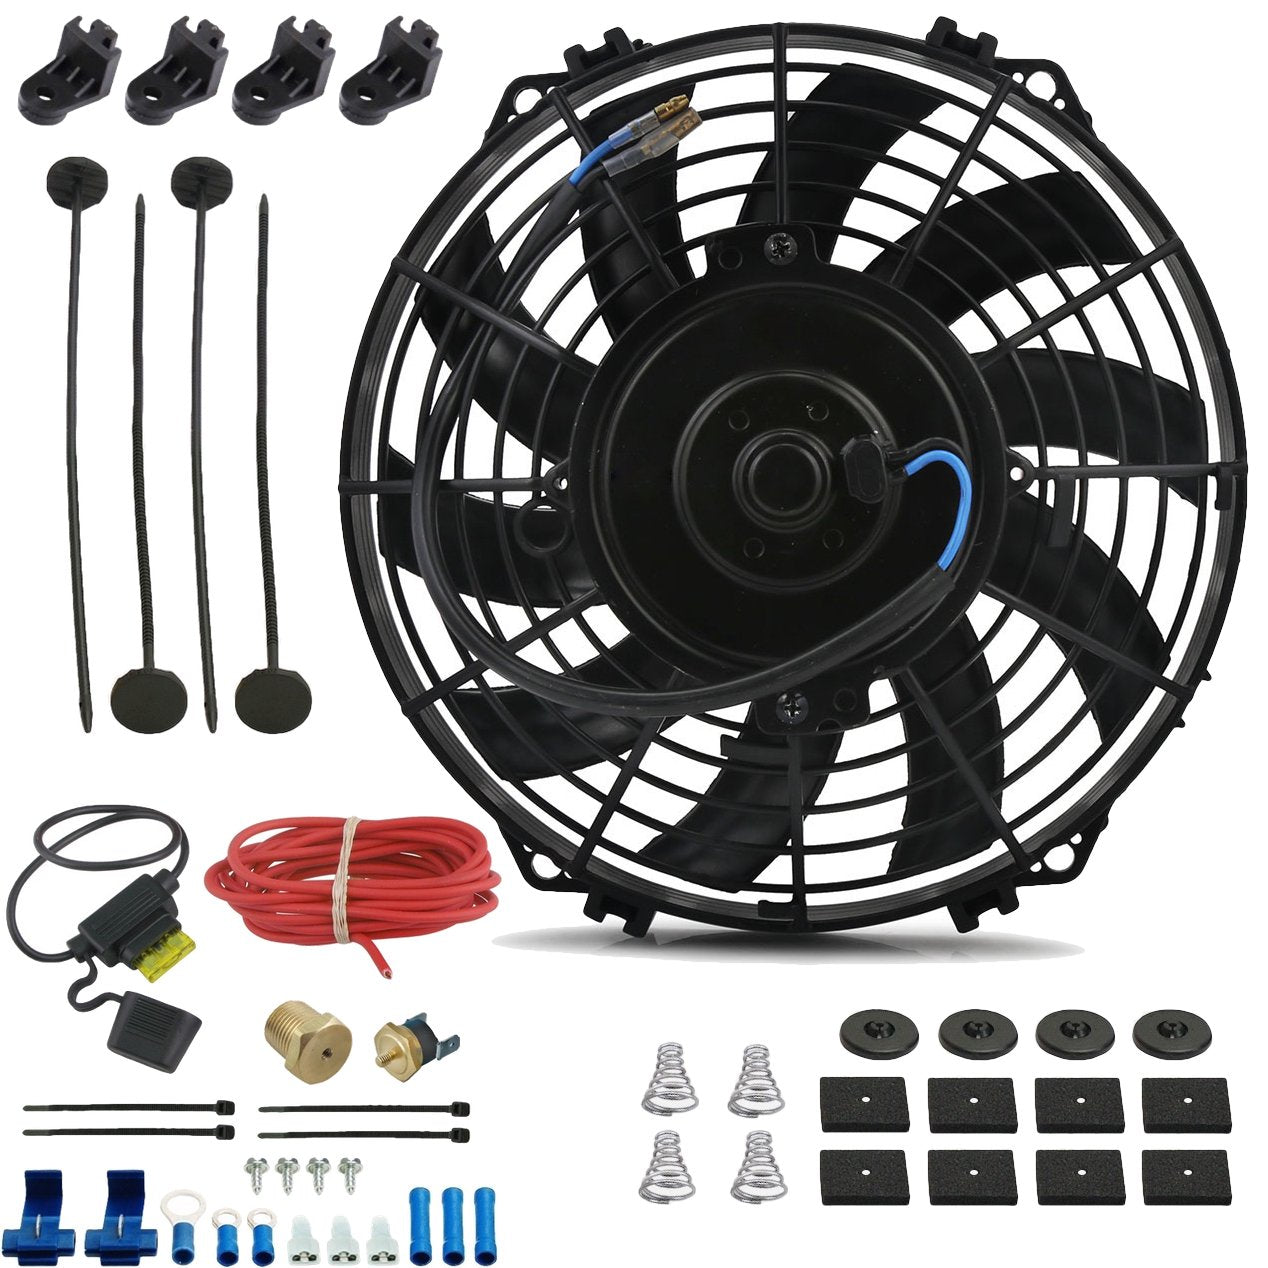 "9"" Inch Electric Auto Radiator Cooling Fan Thermostat Temperature Switch In-Line Fuse Wire Kit-Single Electric Fans-American Volt-1/8"" NPT-140'F On - 125'F Off-American Volt"